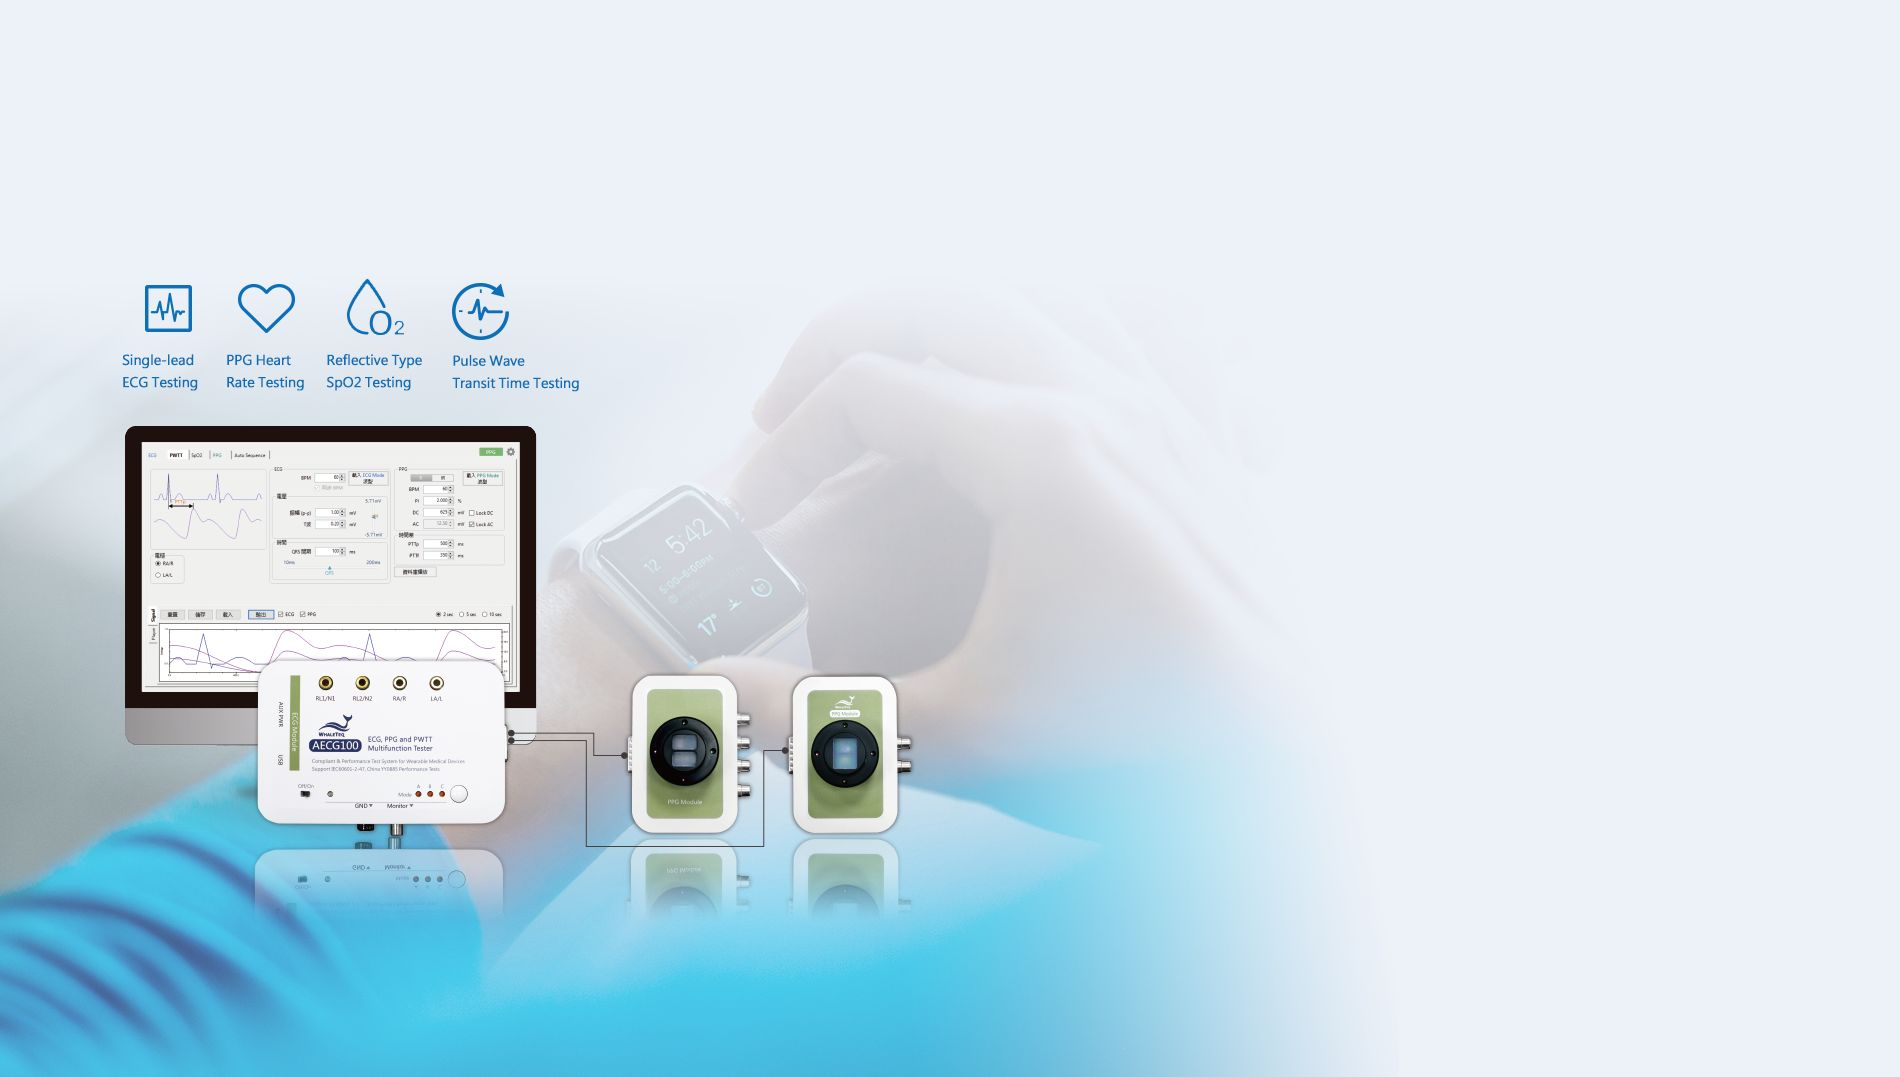 Test Solution for Medical Device and Healthcare Wearable - WHALETEQ